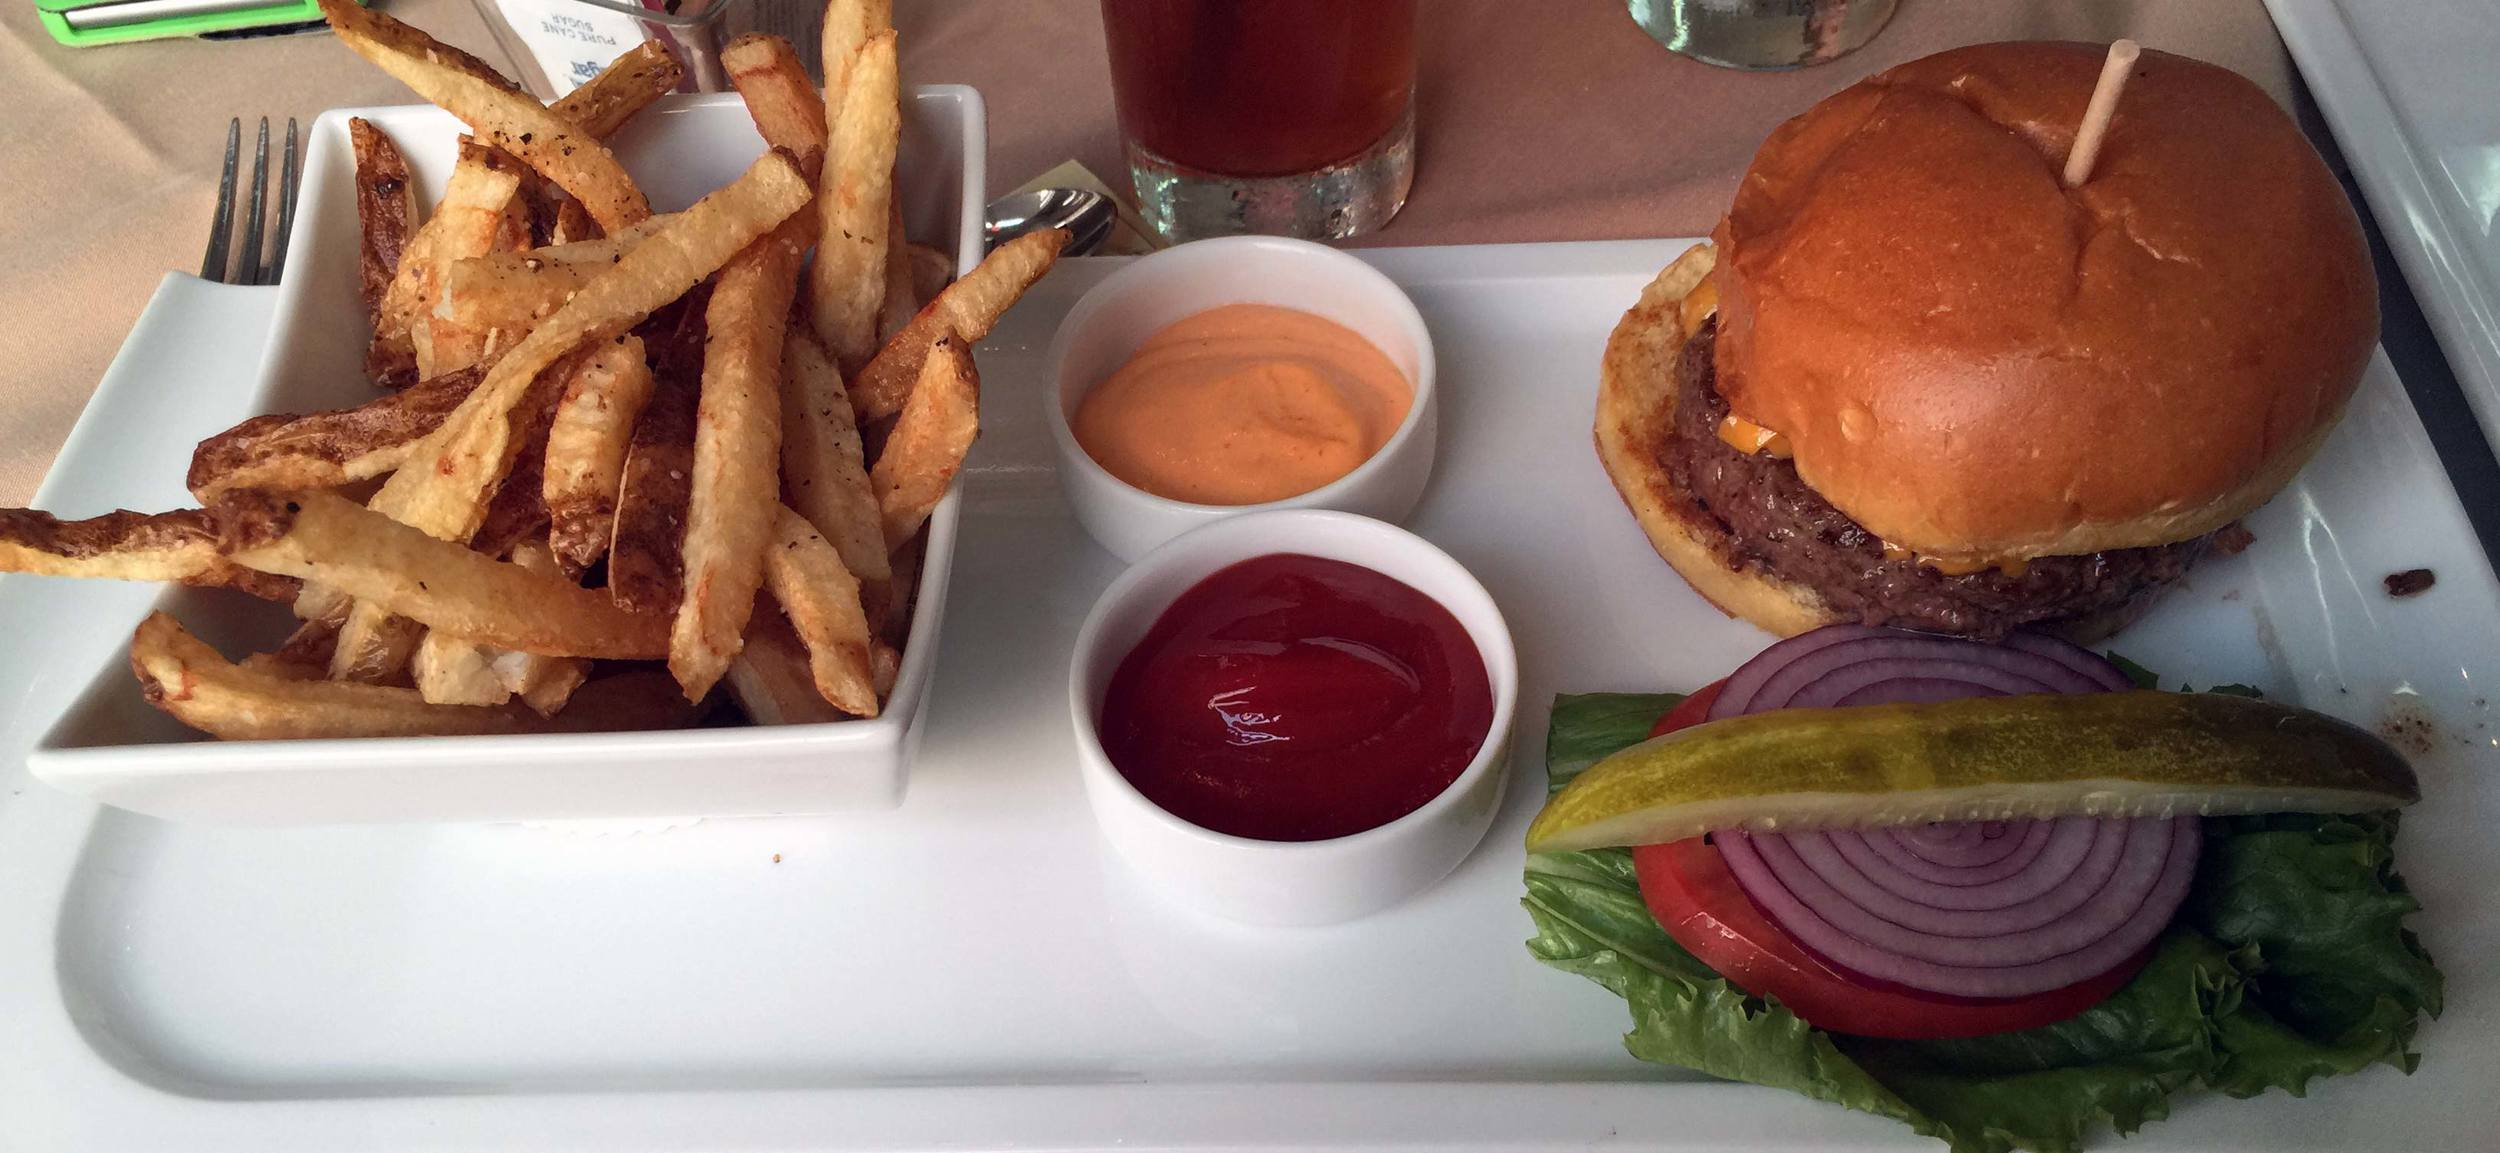 All-American Burger made with Akaushi Beef accompanied byhandcut fries from Harwood Grill